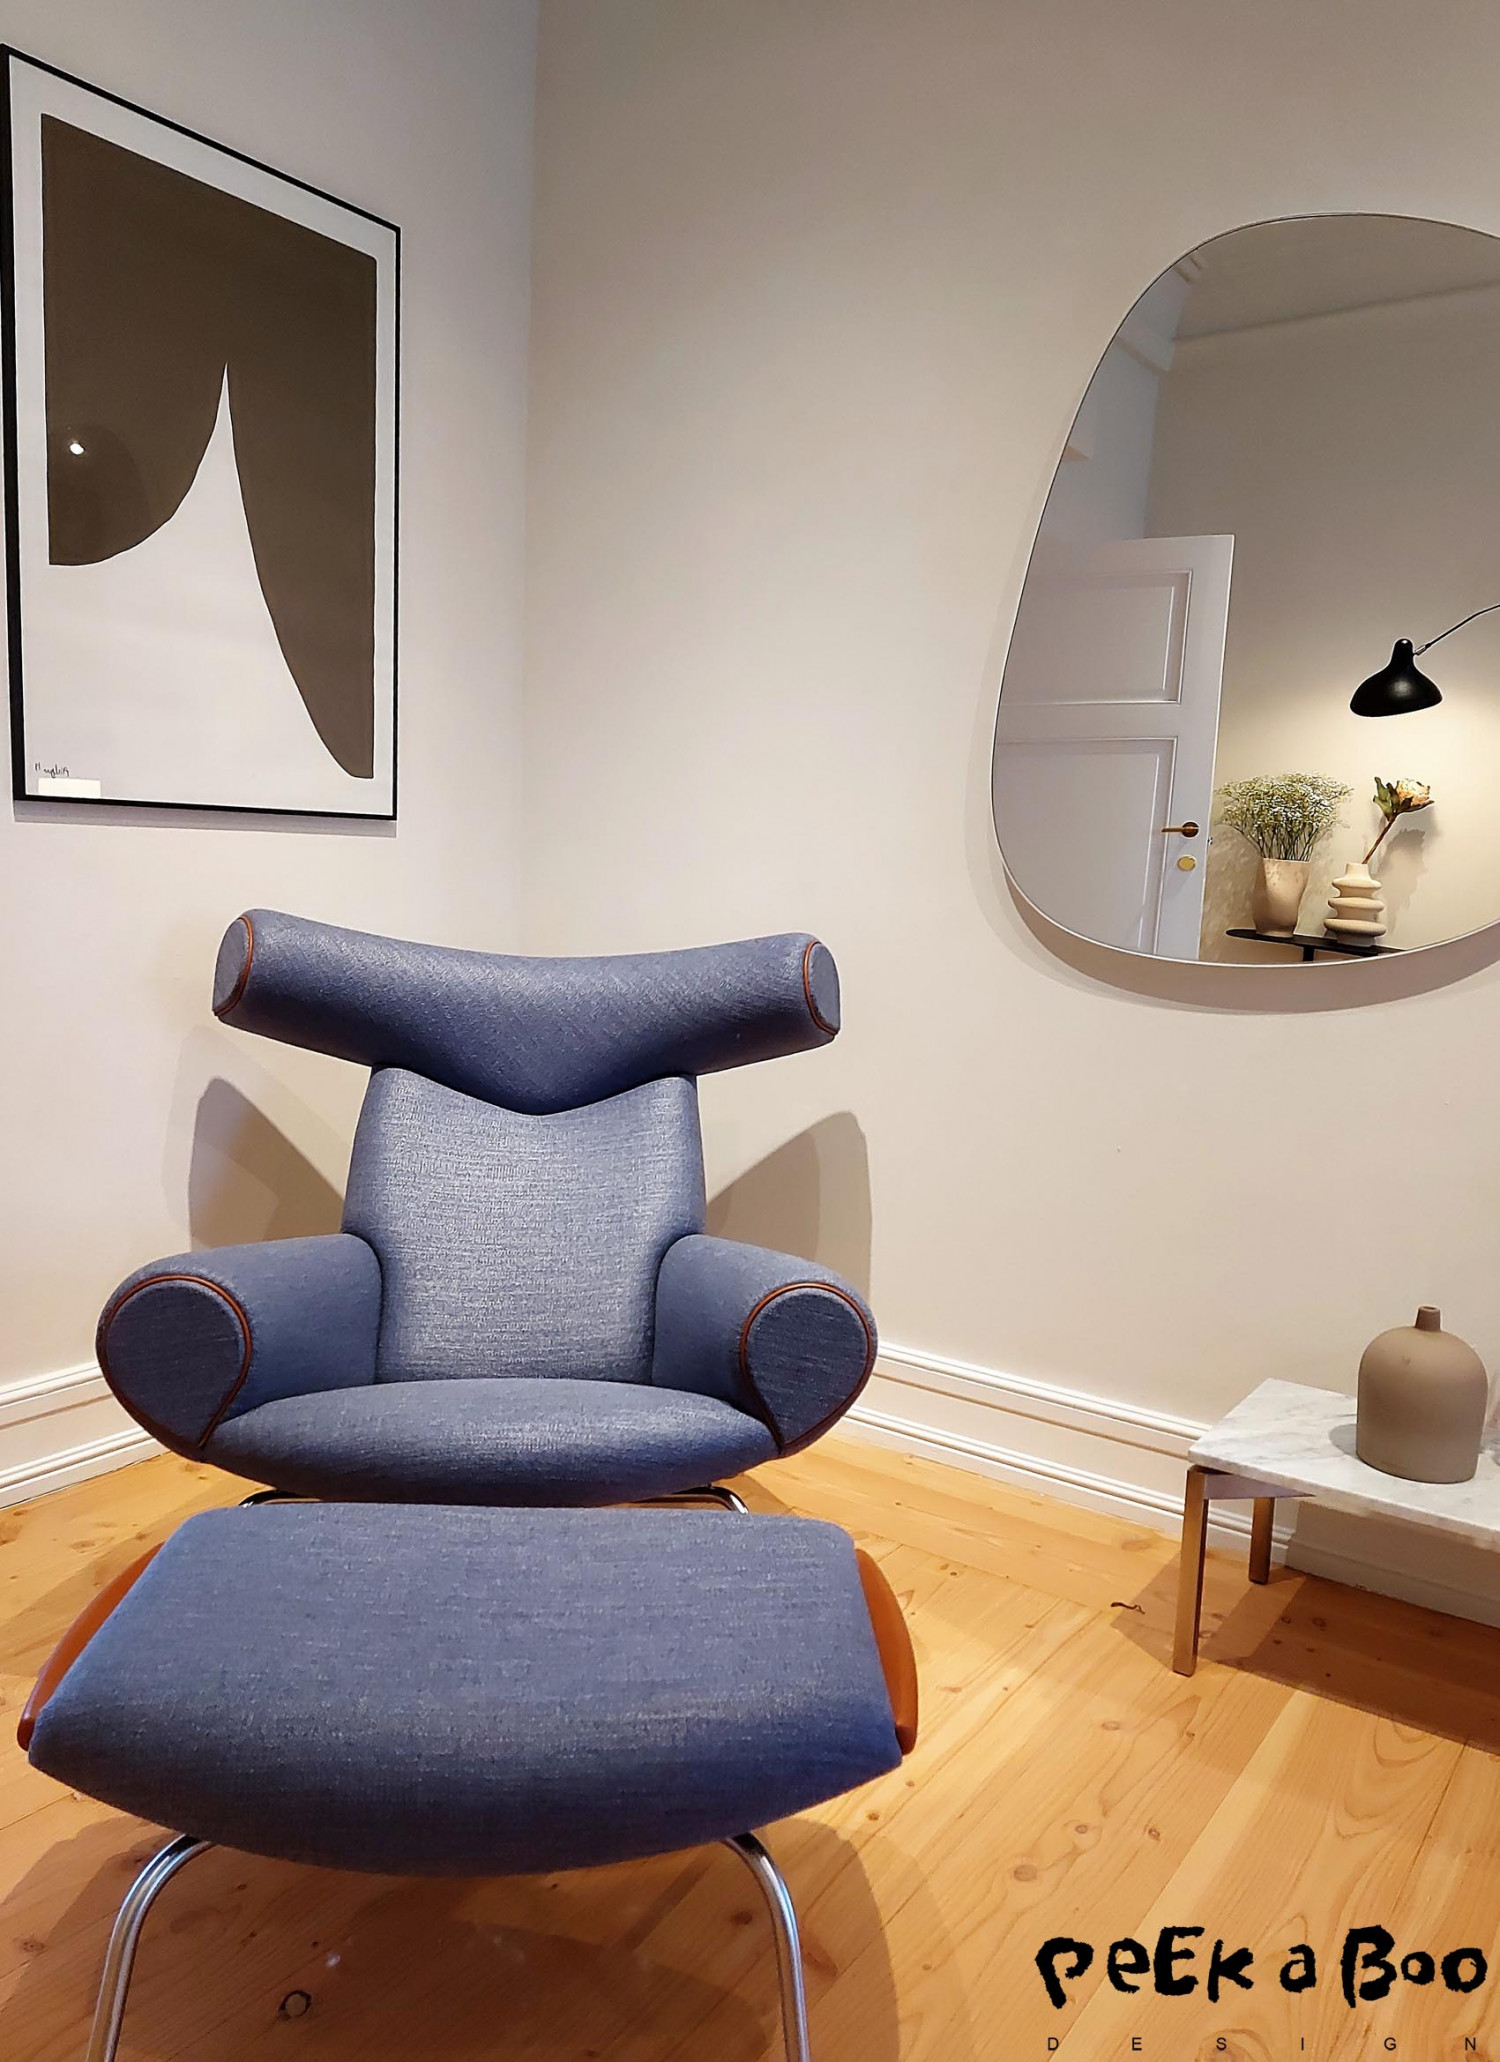 The Ox chair designed by Wegner in a new colour and material combination. Really cool.